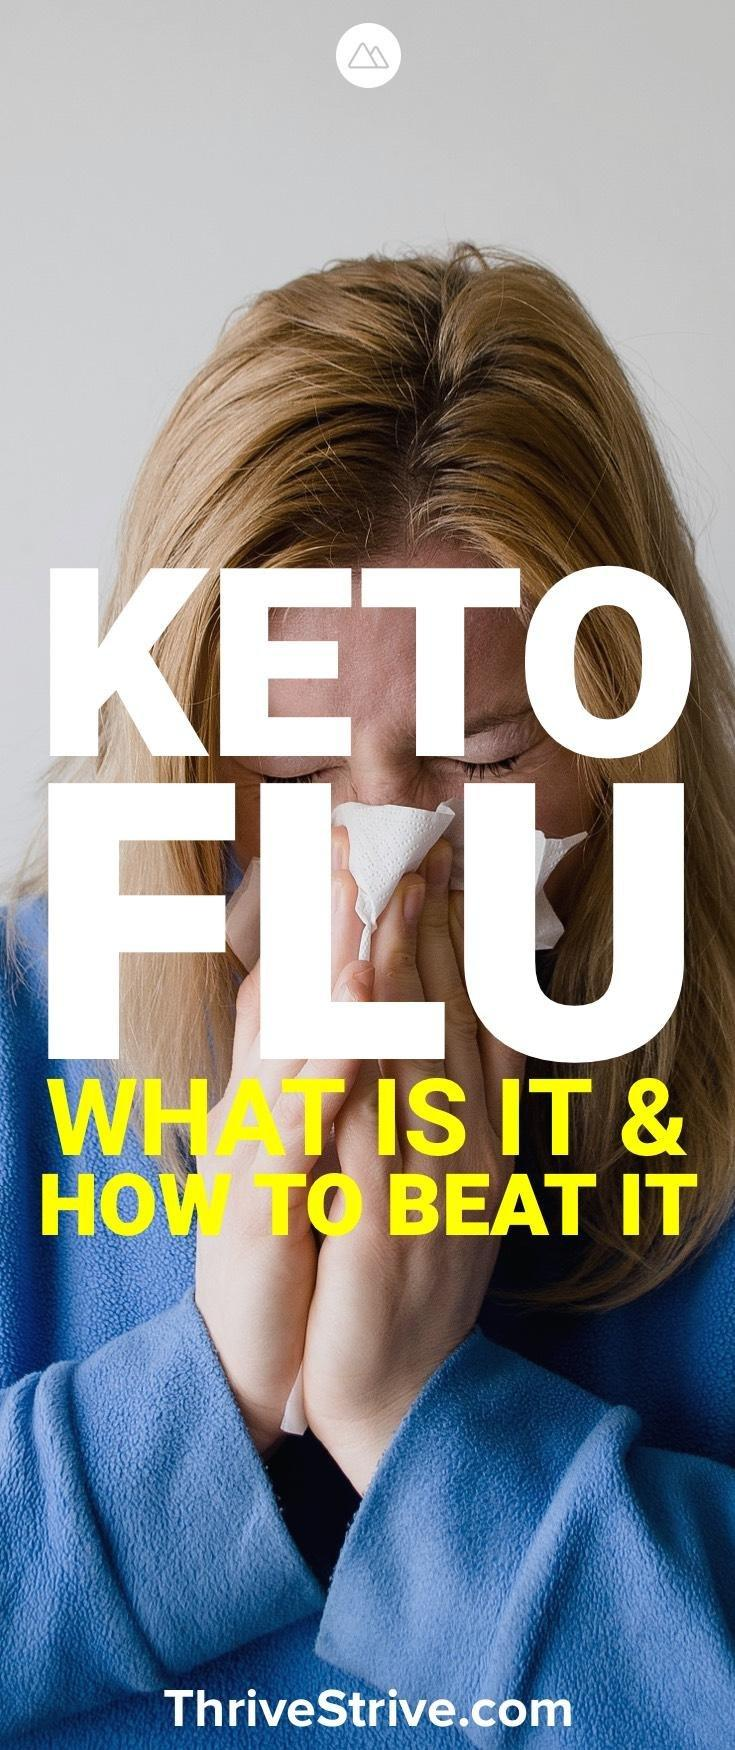 Keto Flu: What It Is And How To Beat It The Healthy Way